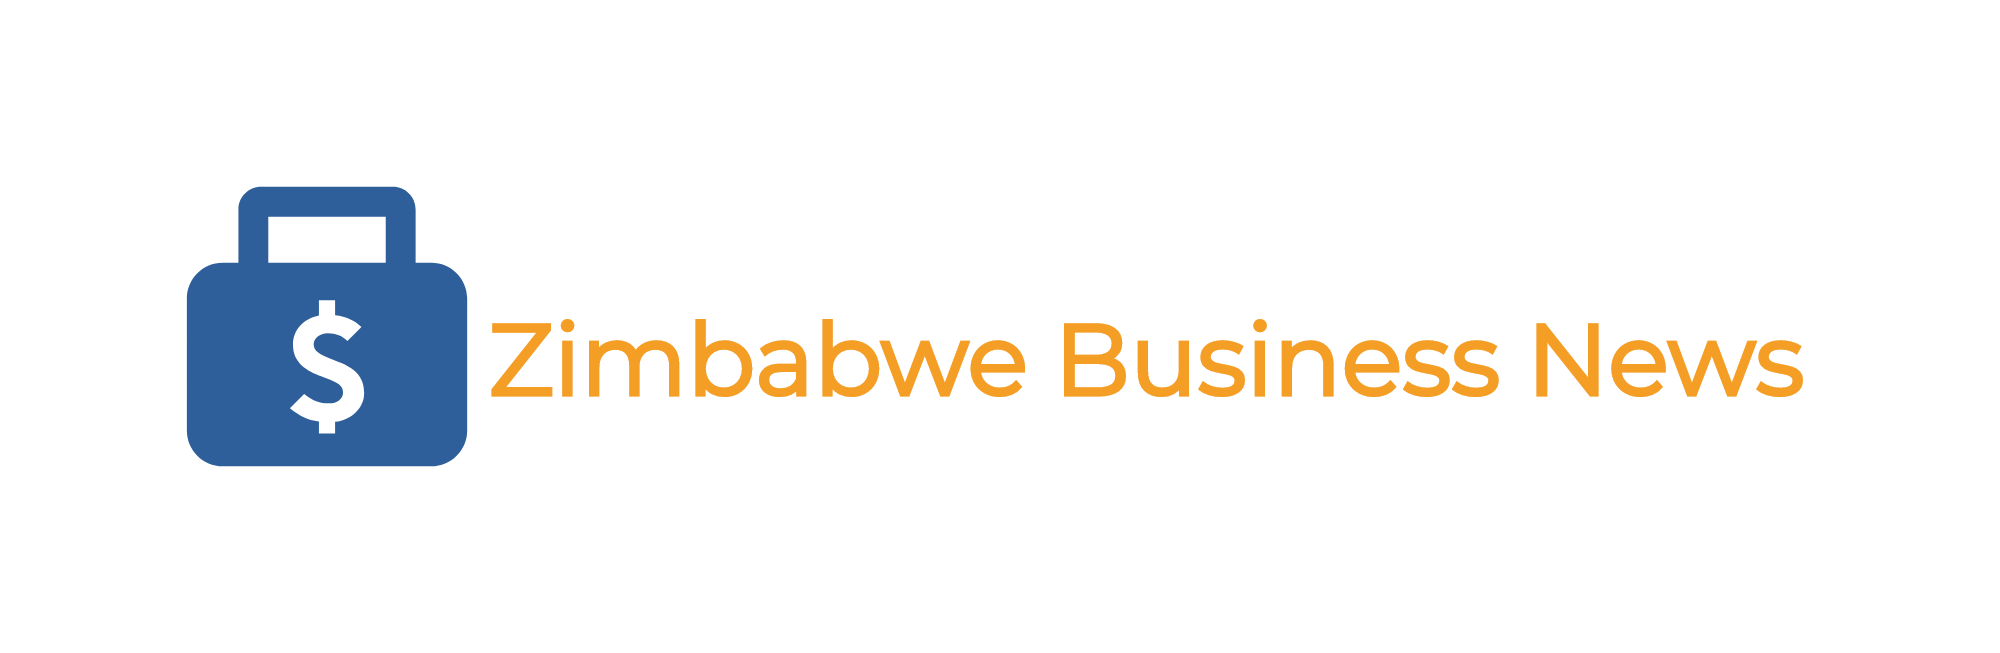 Zimbabwe Business News